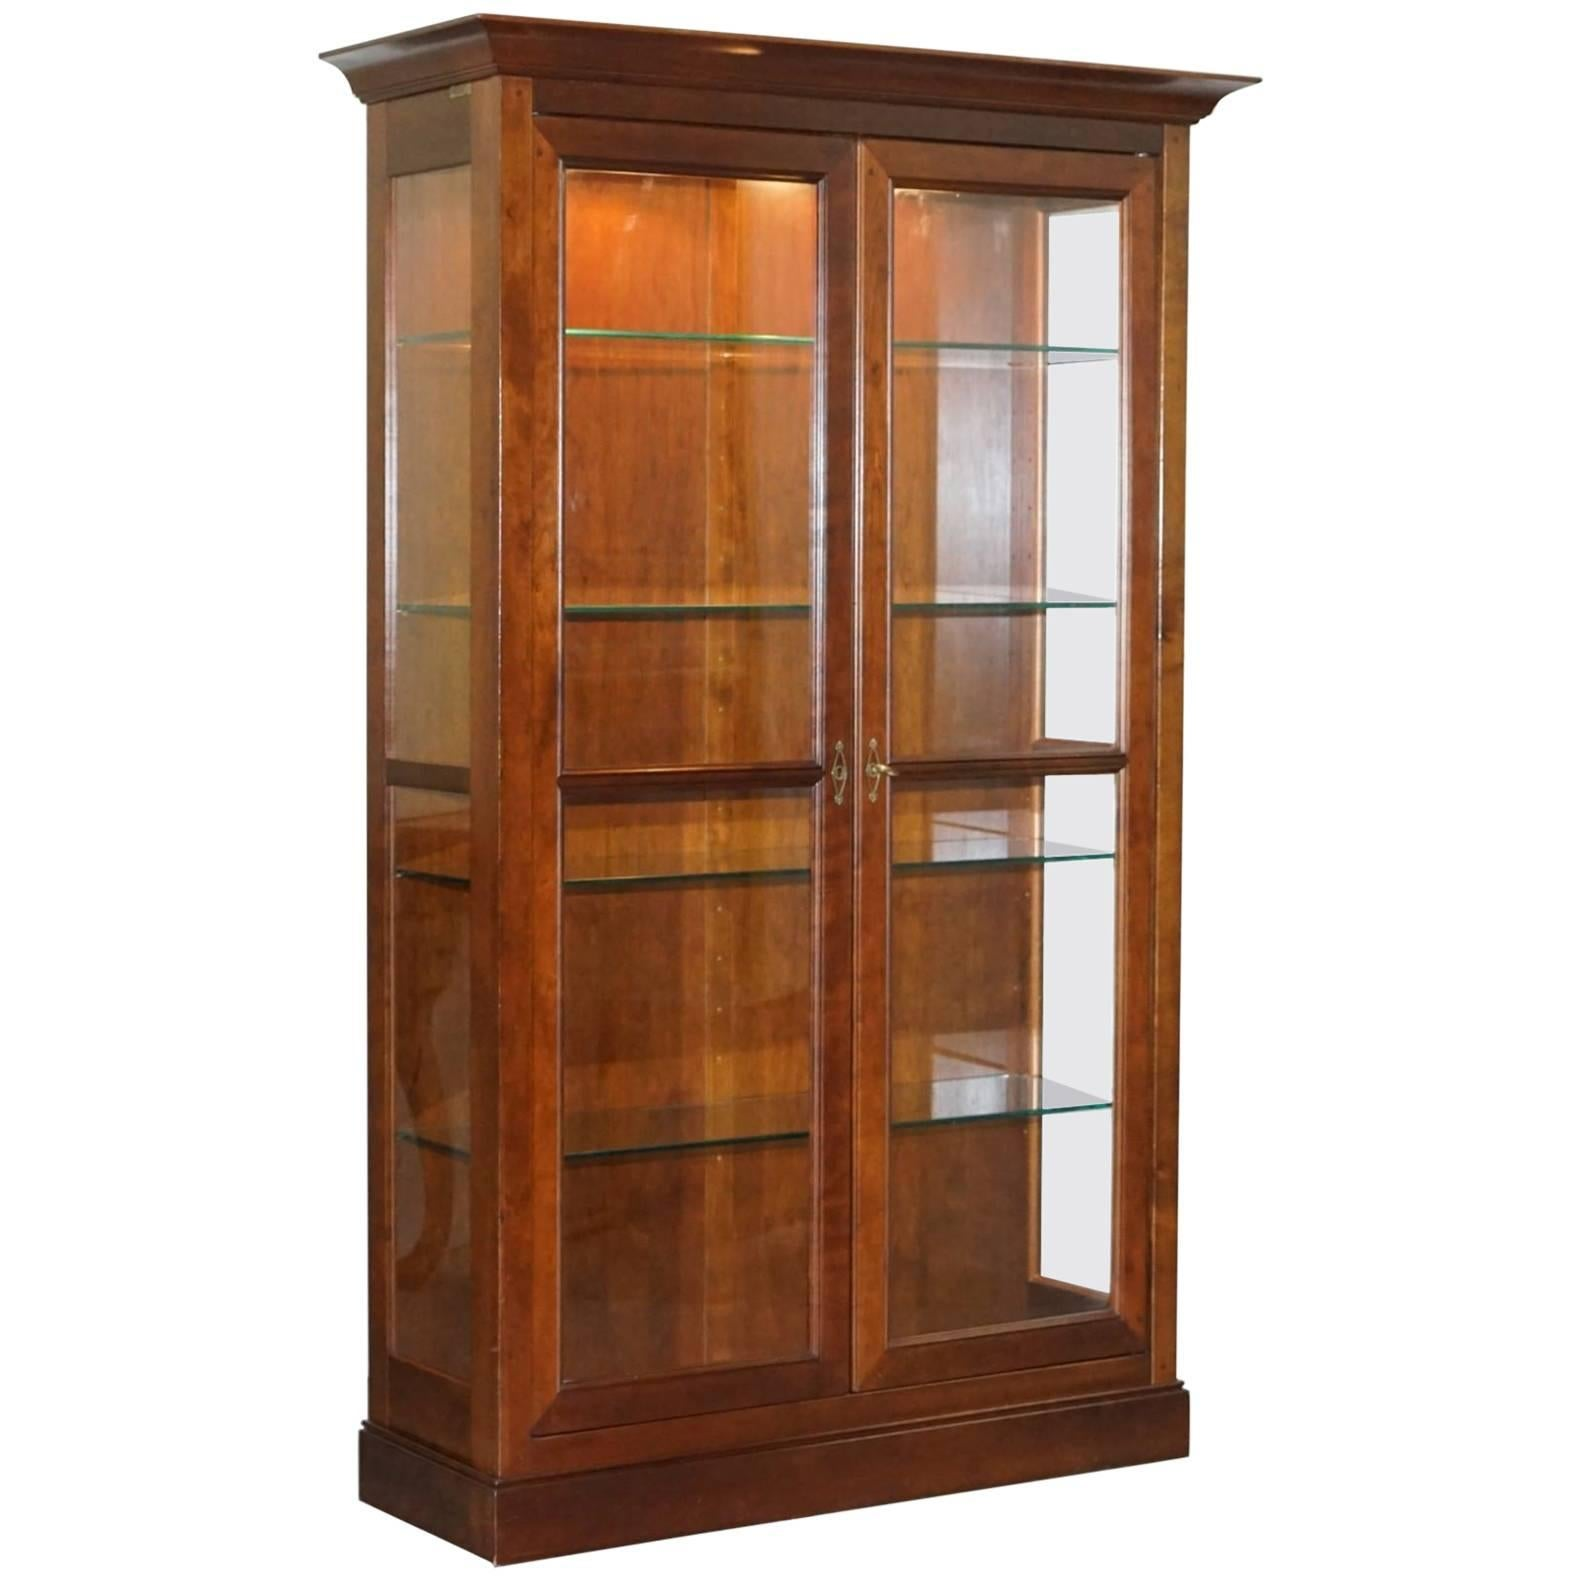 stunning grange solid cherry wood glass display cabinet with lights rh 1stdibs co uk  glass china cabinet with lights